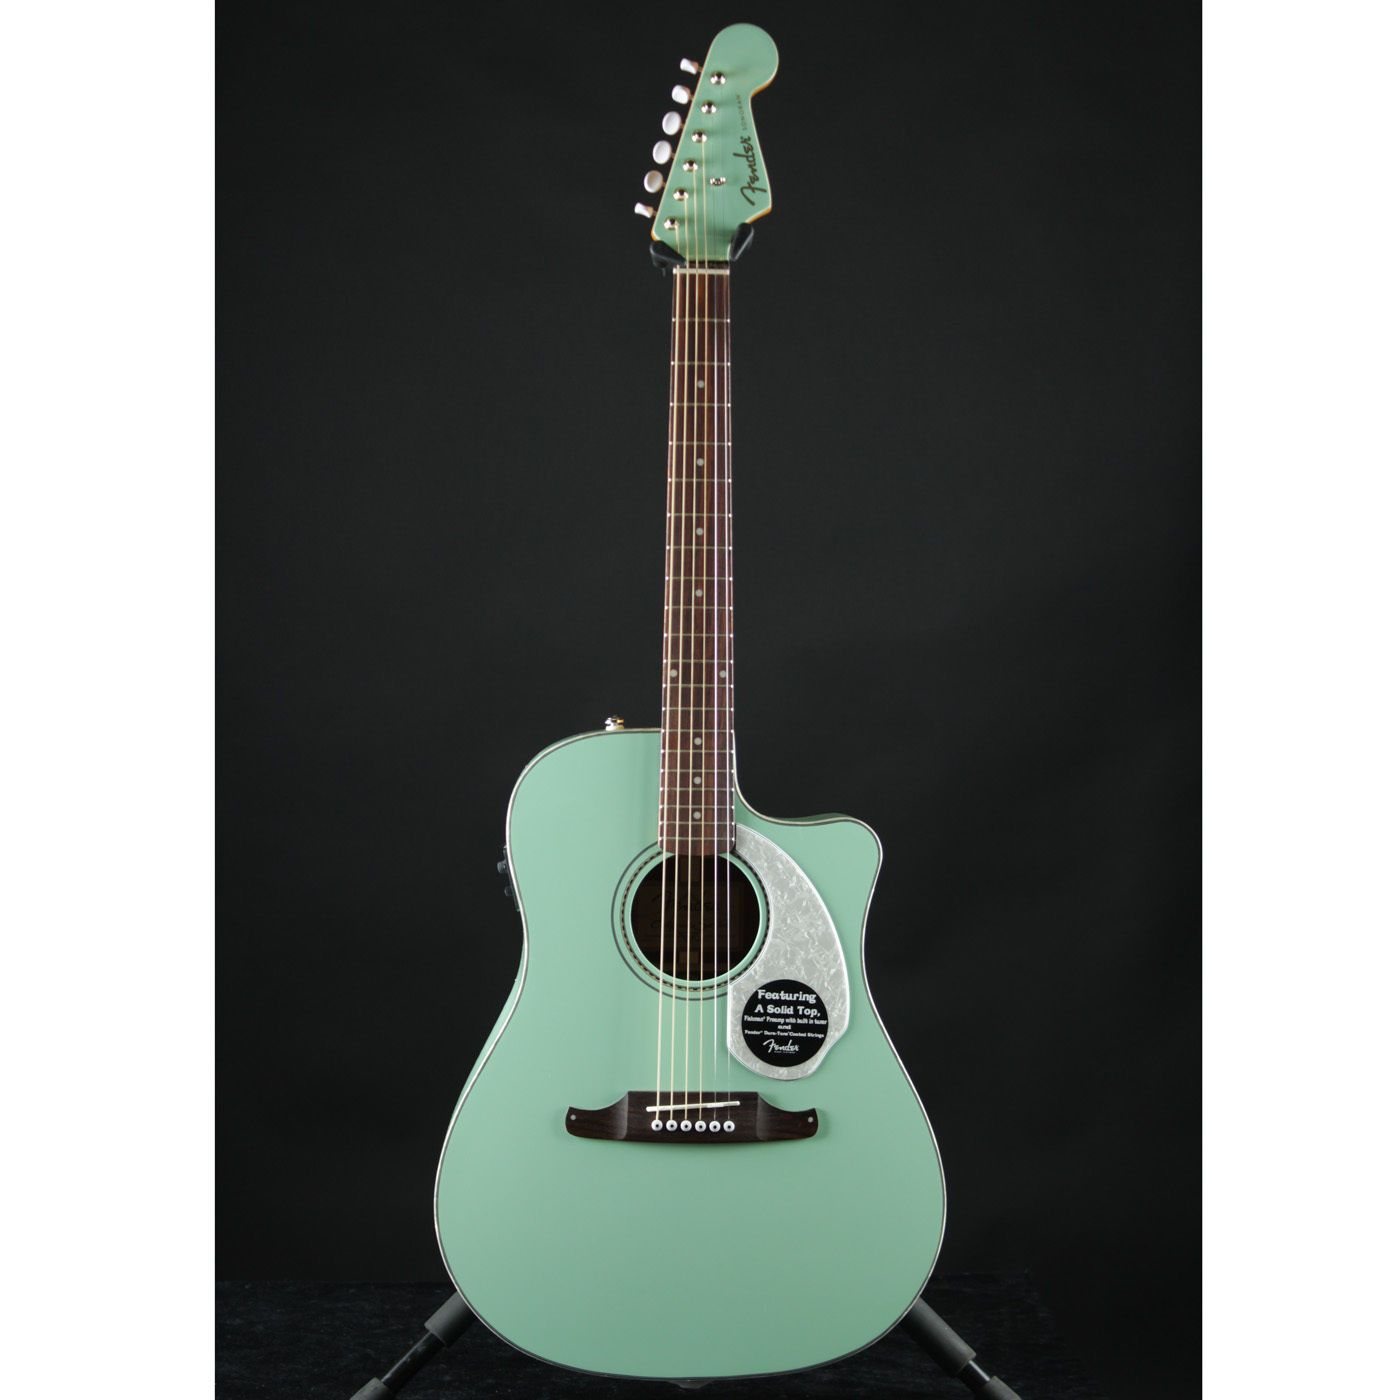 Fender Sonoran Sce Surf Green Acoustic Electric Guitar Brand New Blue Acoustic Guitar Fender Acoustic Guitar Fender Acoustic